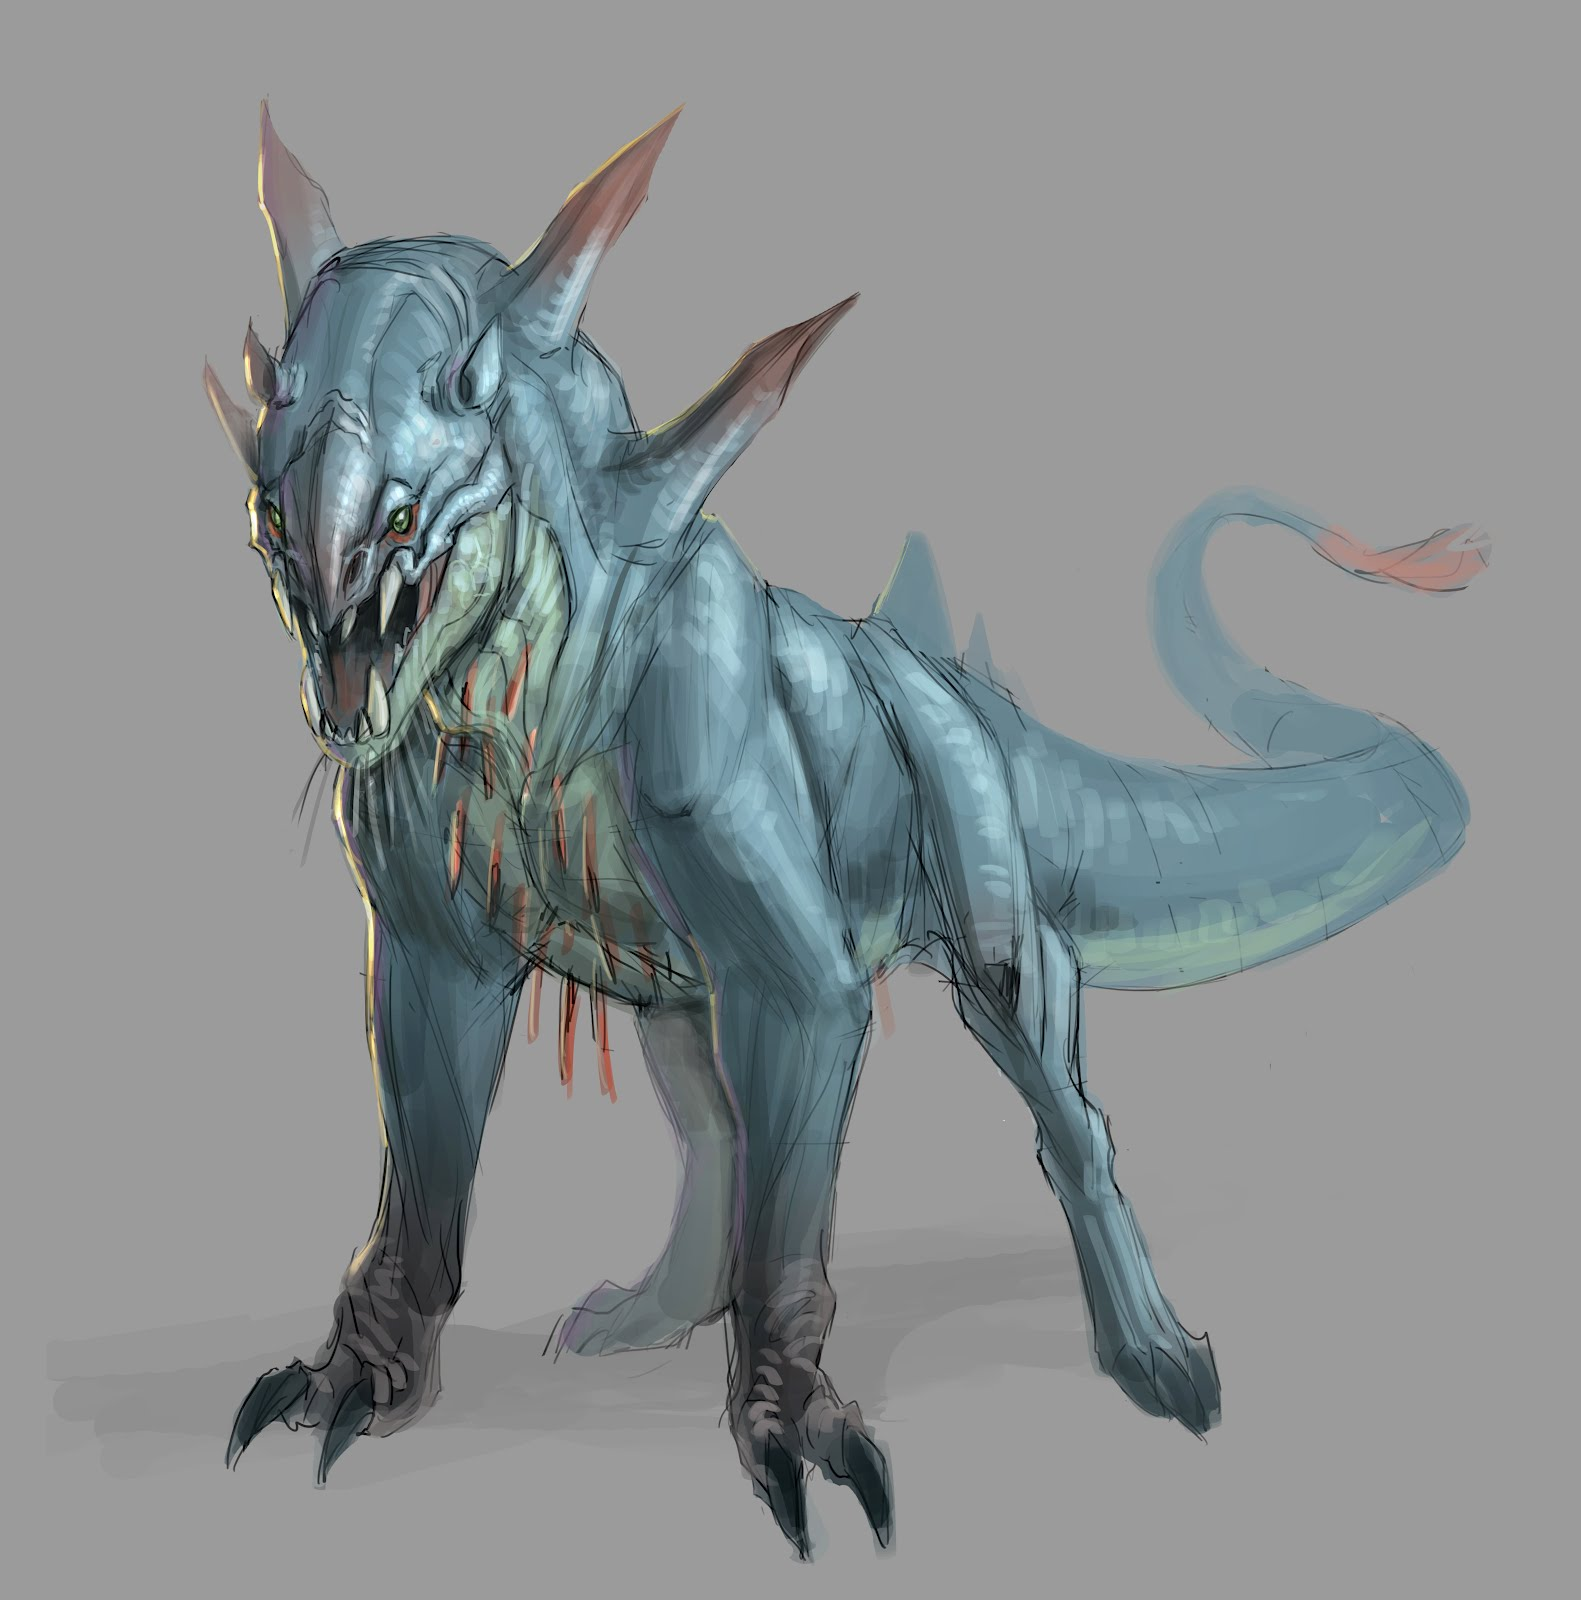 creature animal concept alien creatures anatomy kuo jonathan monster drawings dark drawing academy fantasy demos beast conceptdesignacad qqqq pm posted